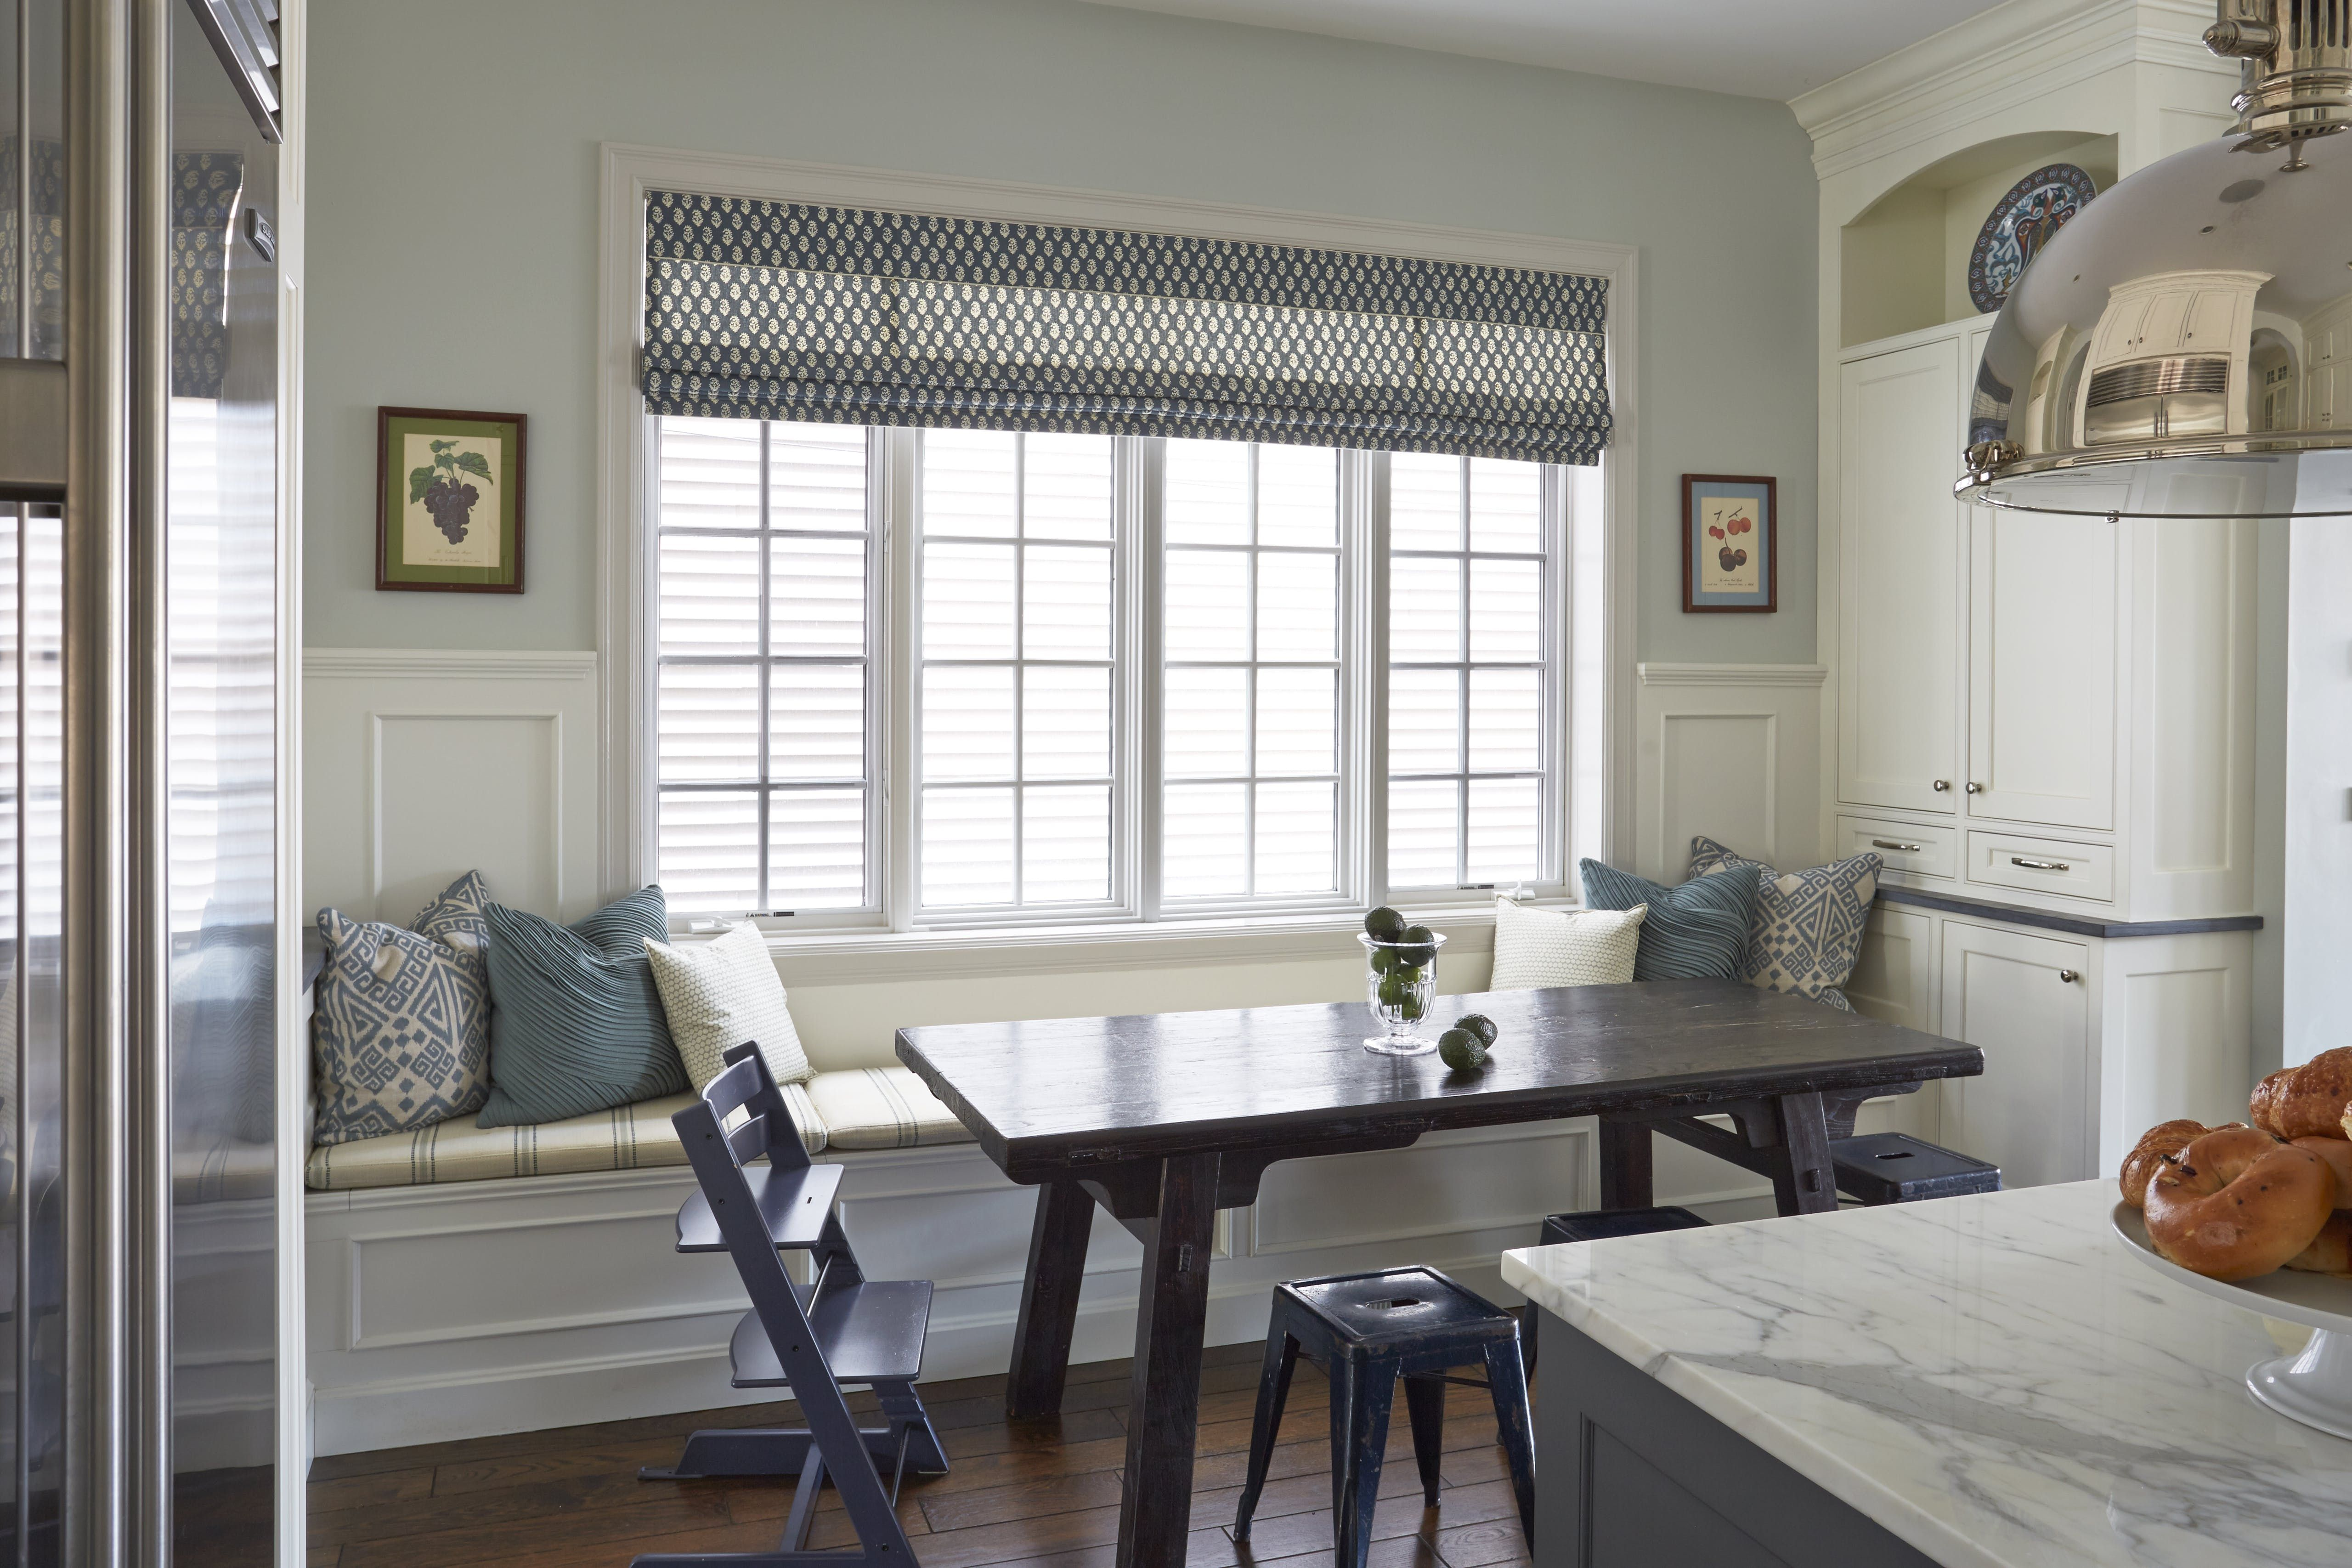 The kitchen is the heart of the home, which is why adding seating ...